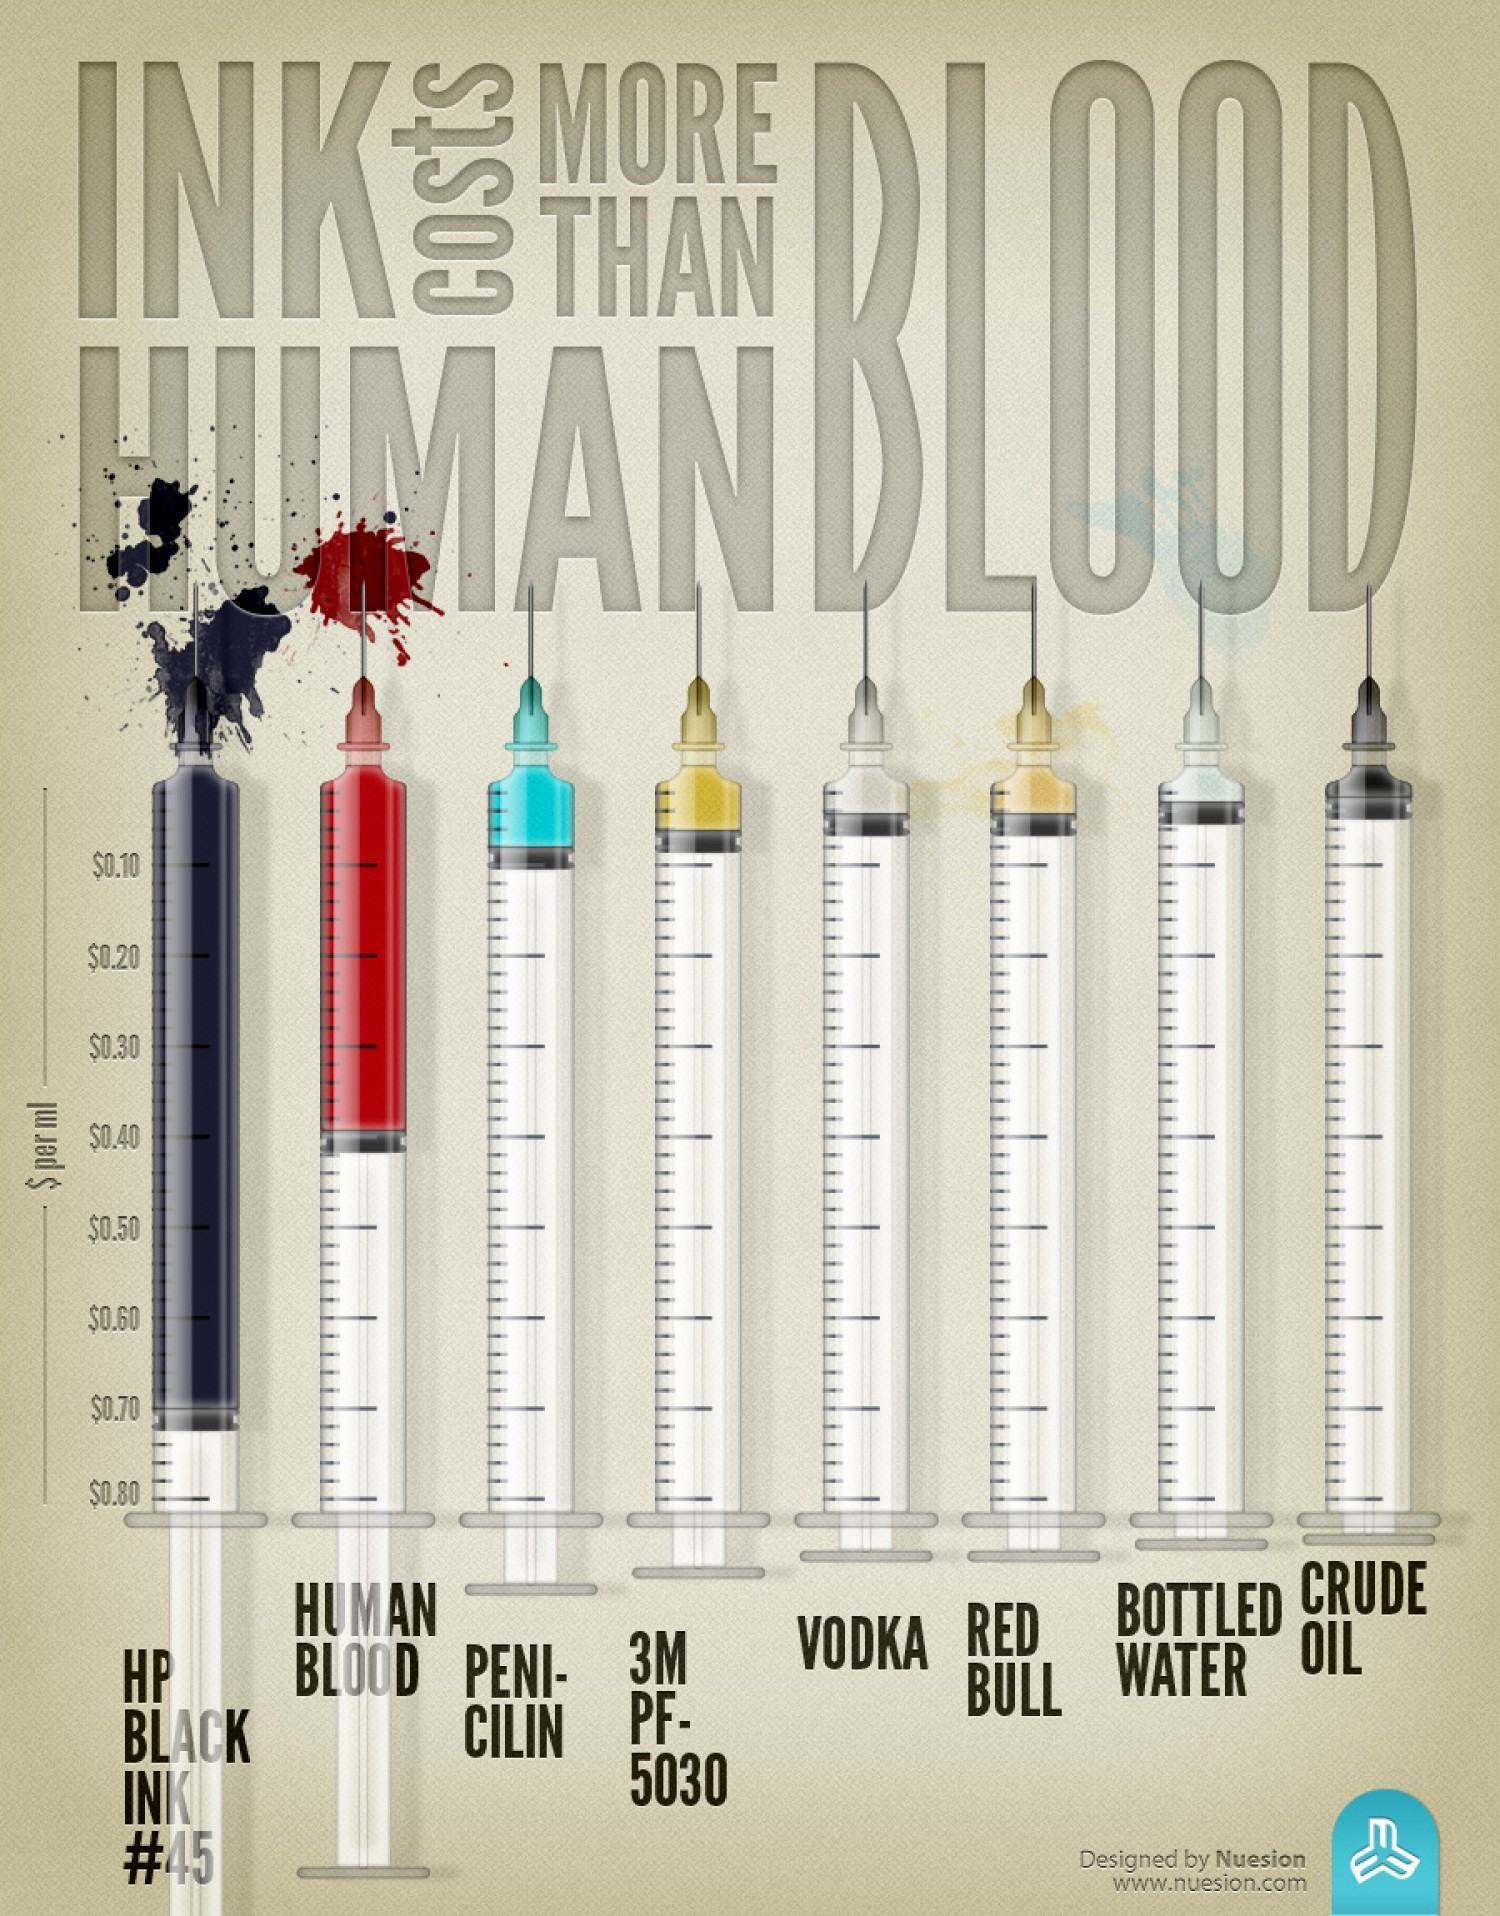 ink-costs-more-than-human-blood_50290ced00807_w1500